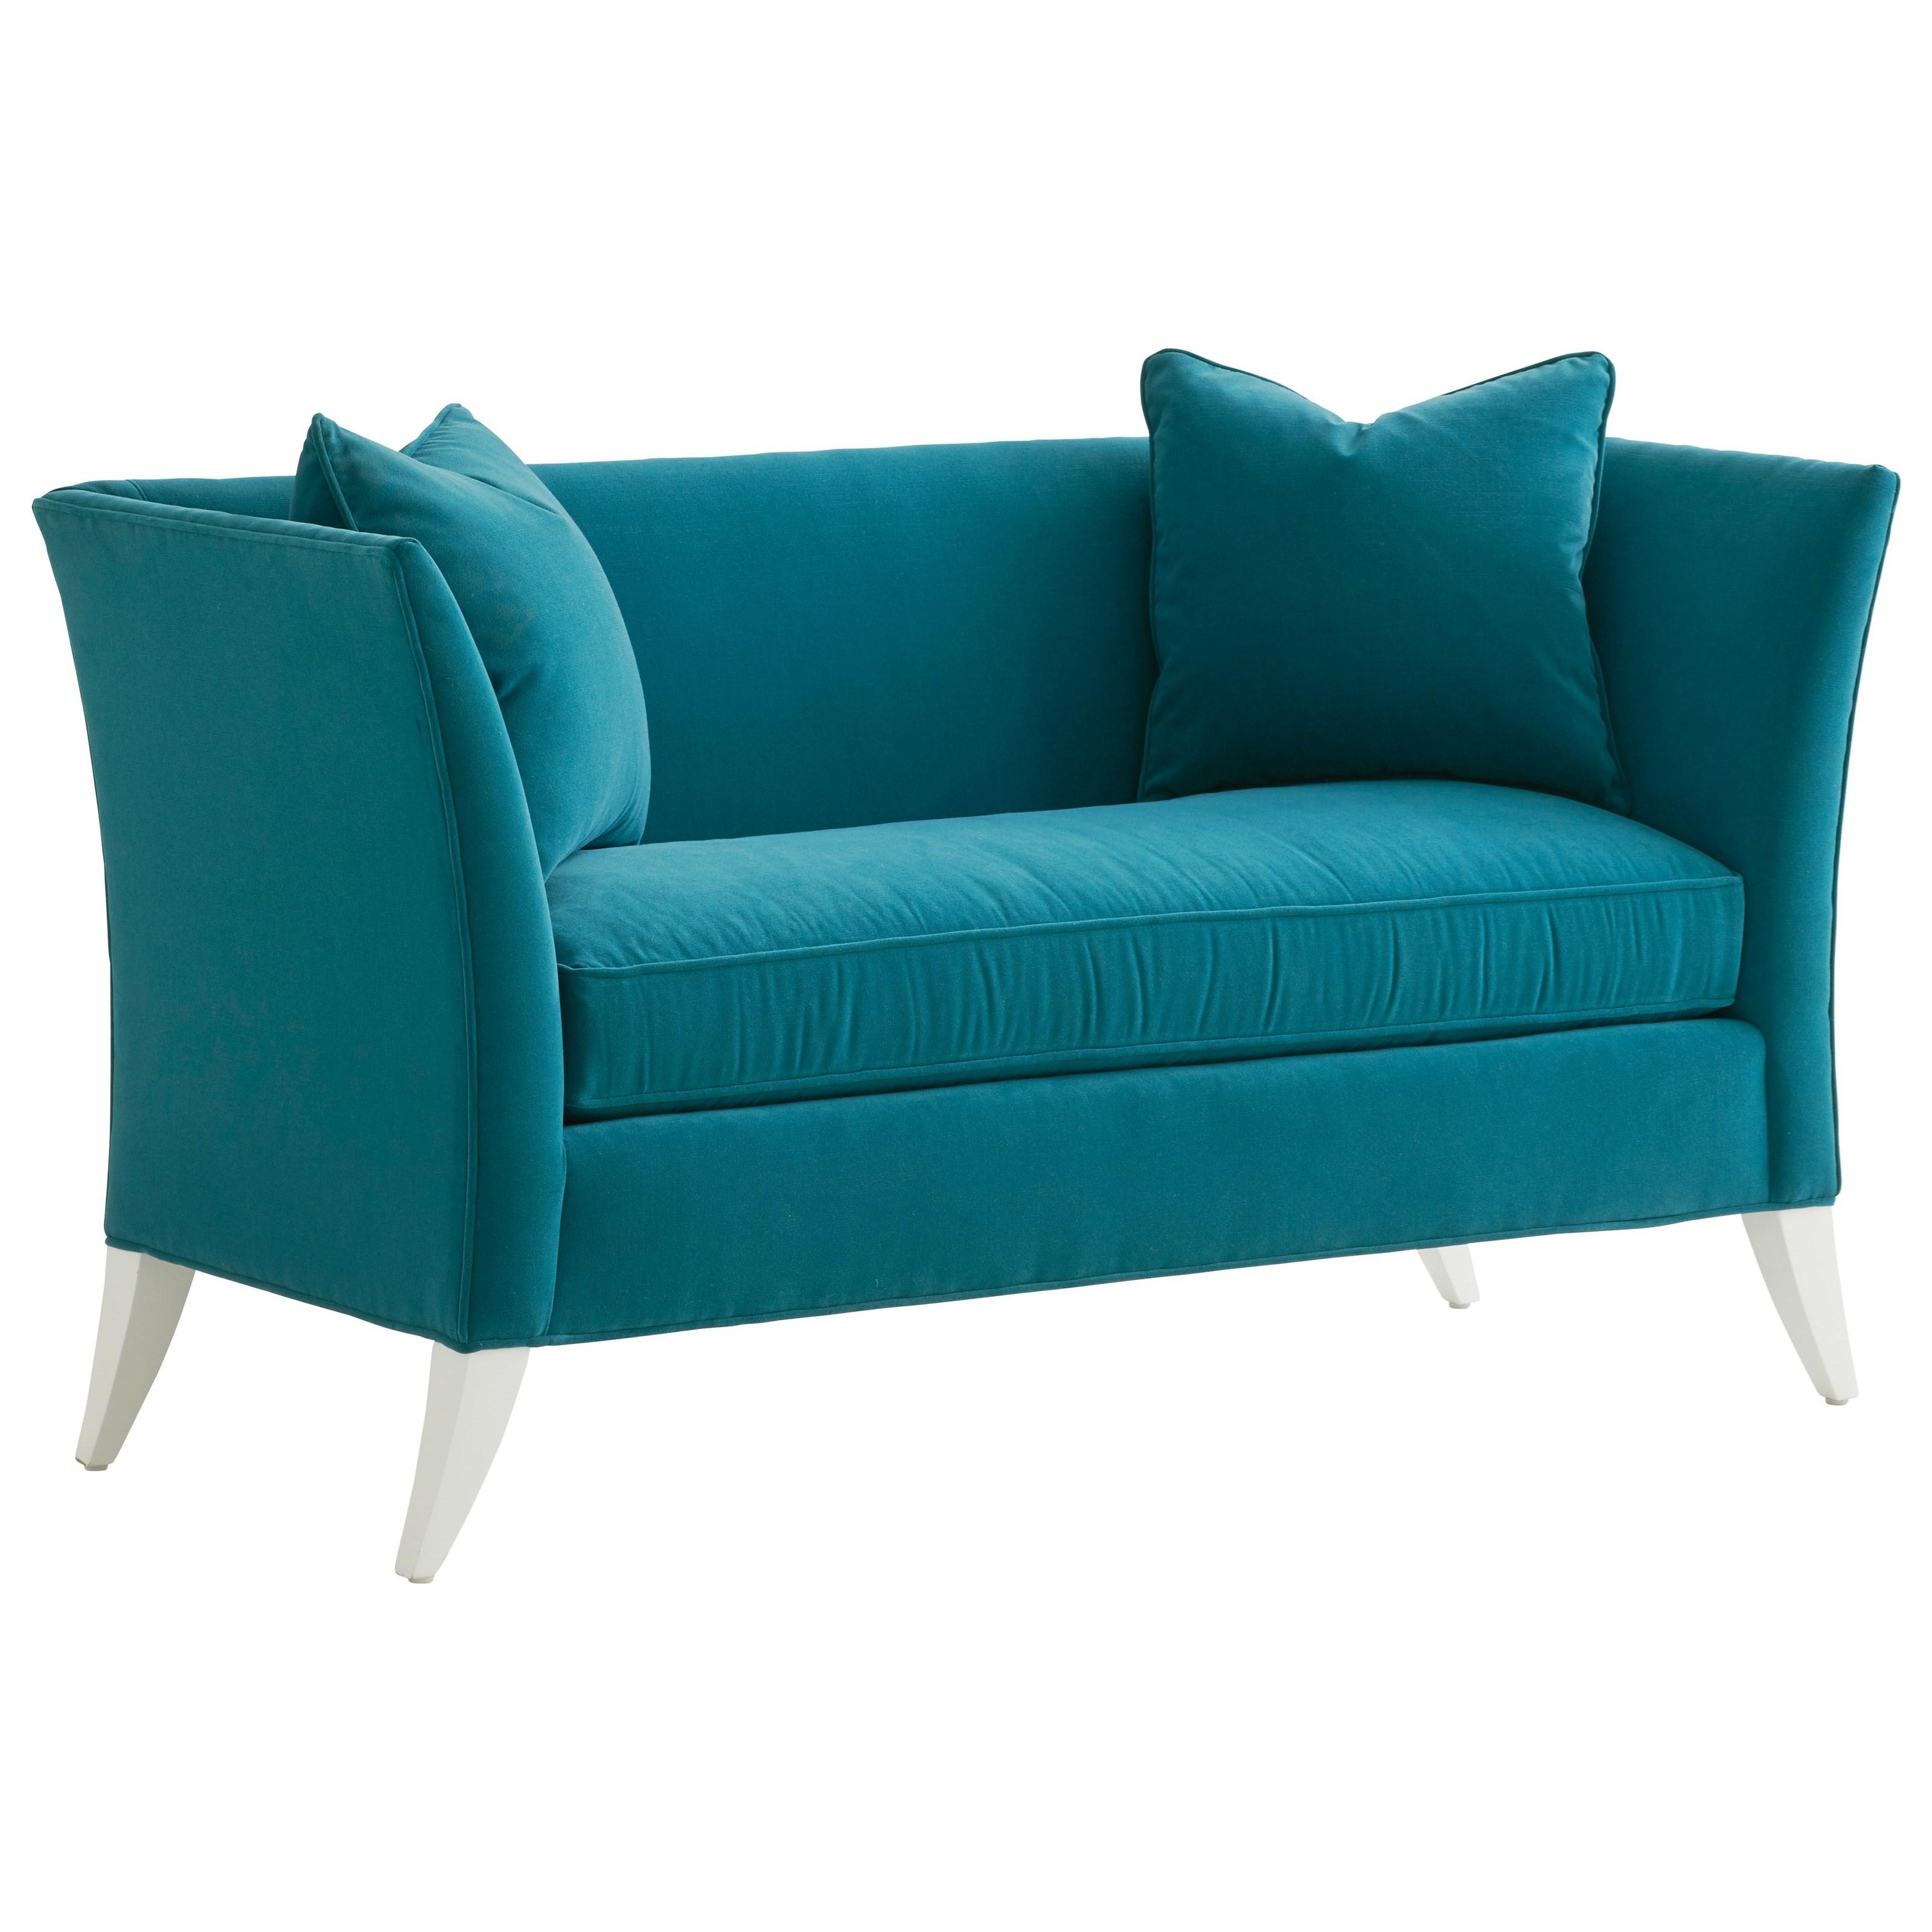 Avondale Hampstead Settee by Lexington at Baer's Furniture